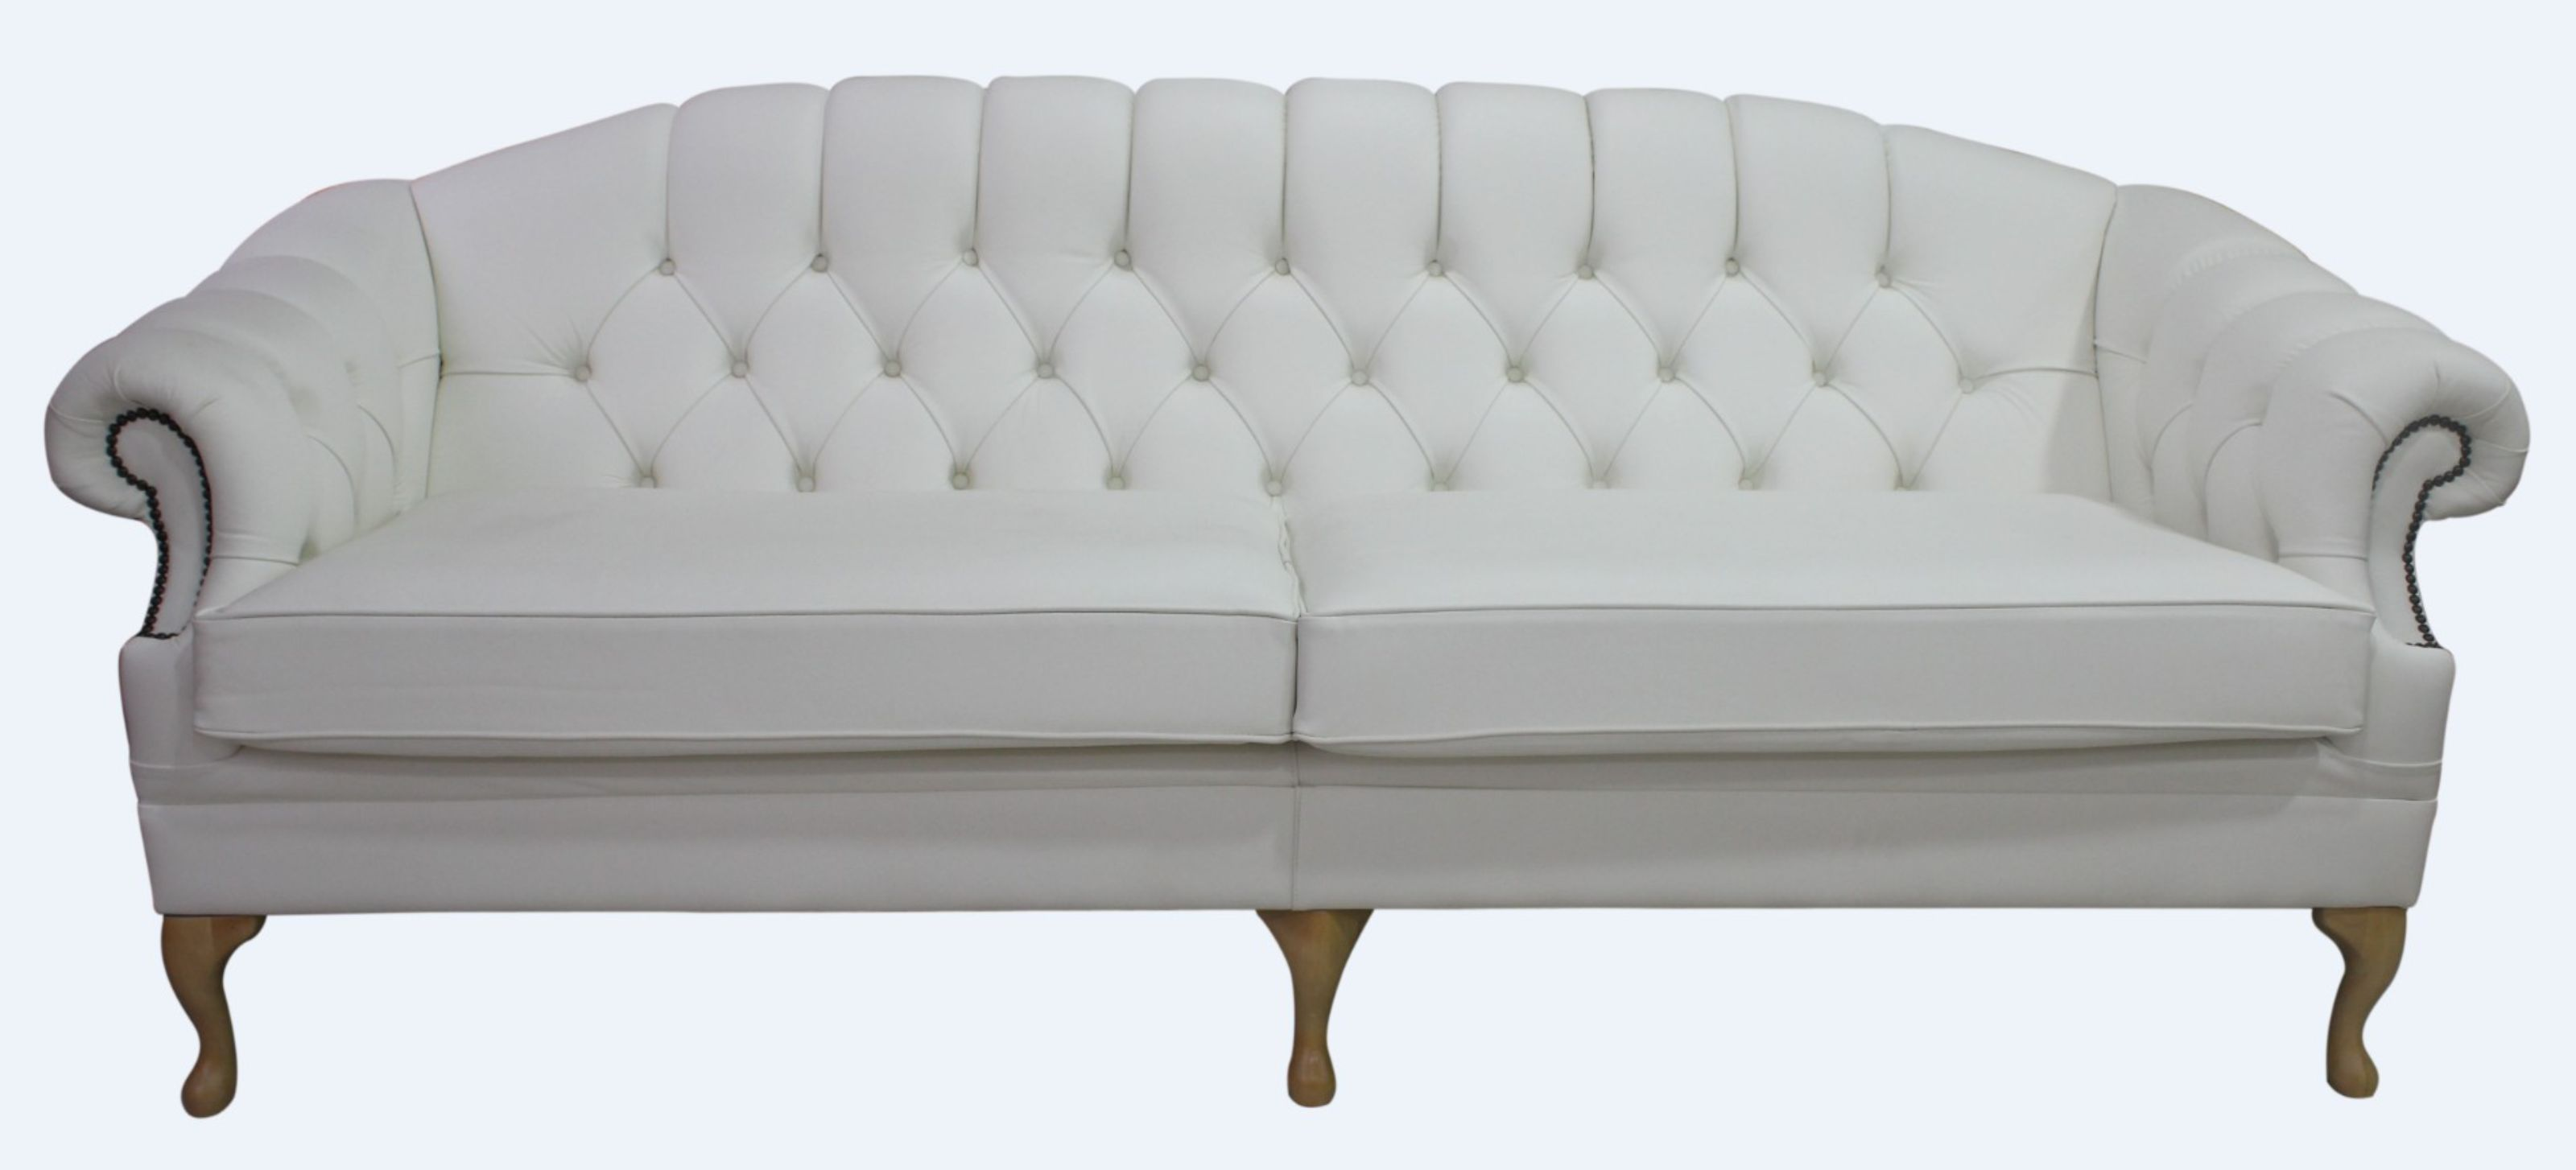 Remarkable Details About Victoria 4 Seater Chesterfield Sofa Settee Couch Real White Leather Uk Handmade Short Links Chair Design For Home Short Linksinfo